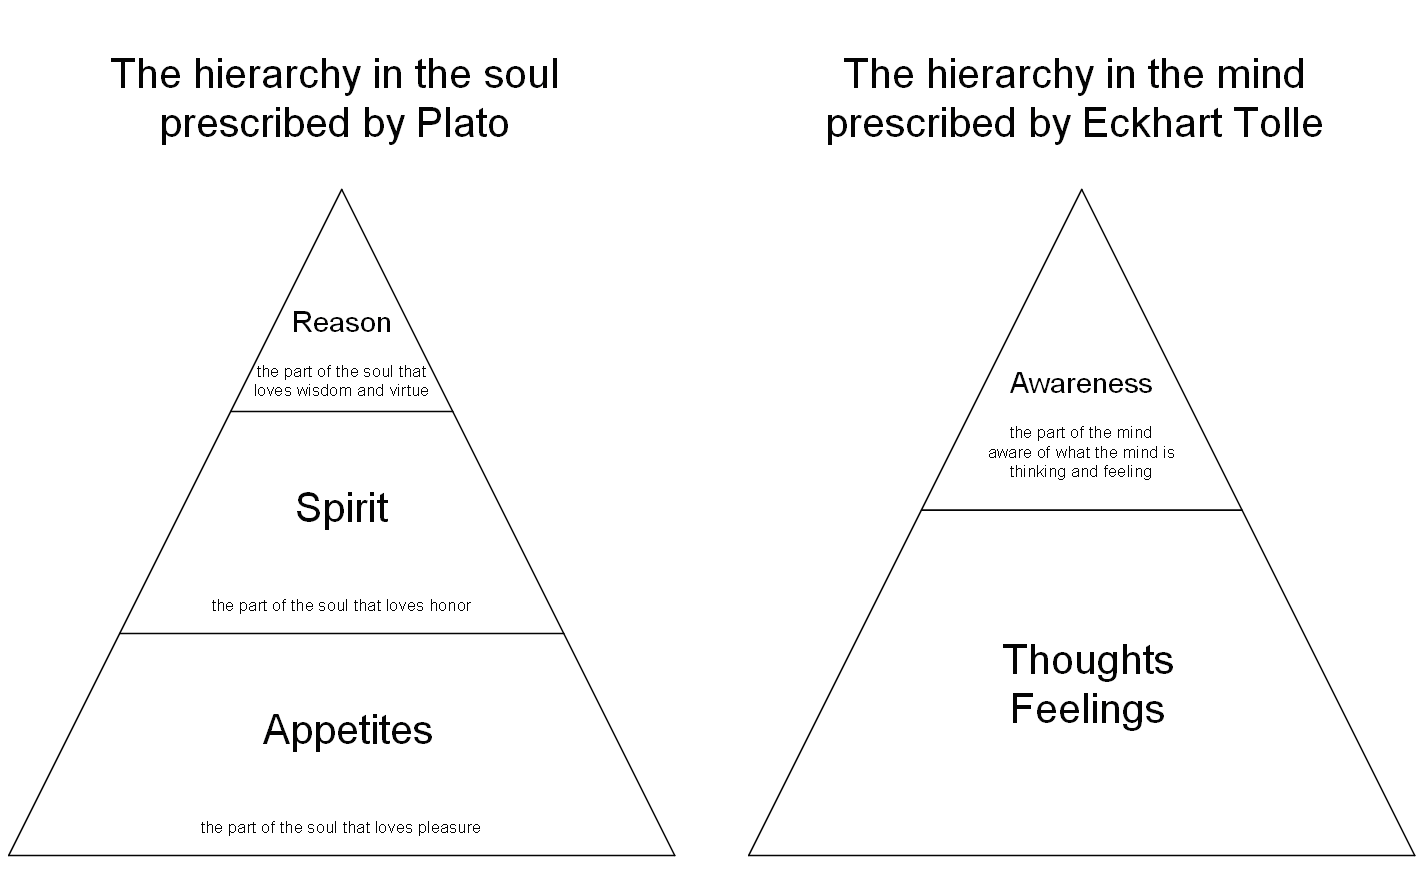 hight resolution of file hierarchies of mind in plato and eckhart tolle png